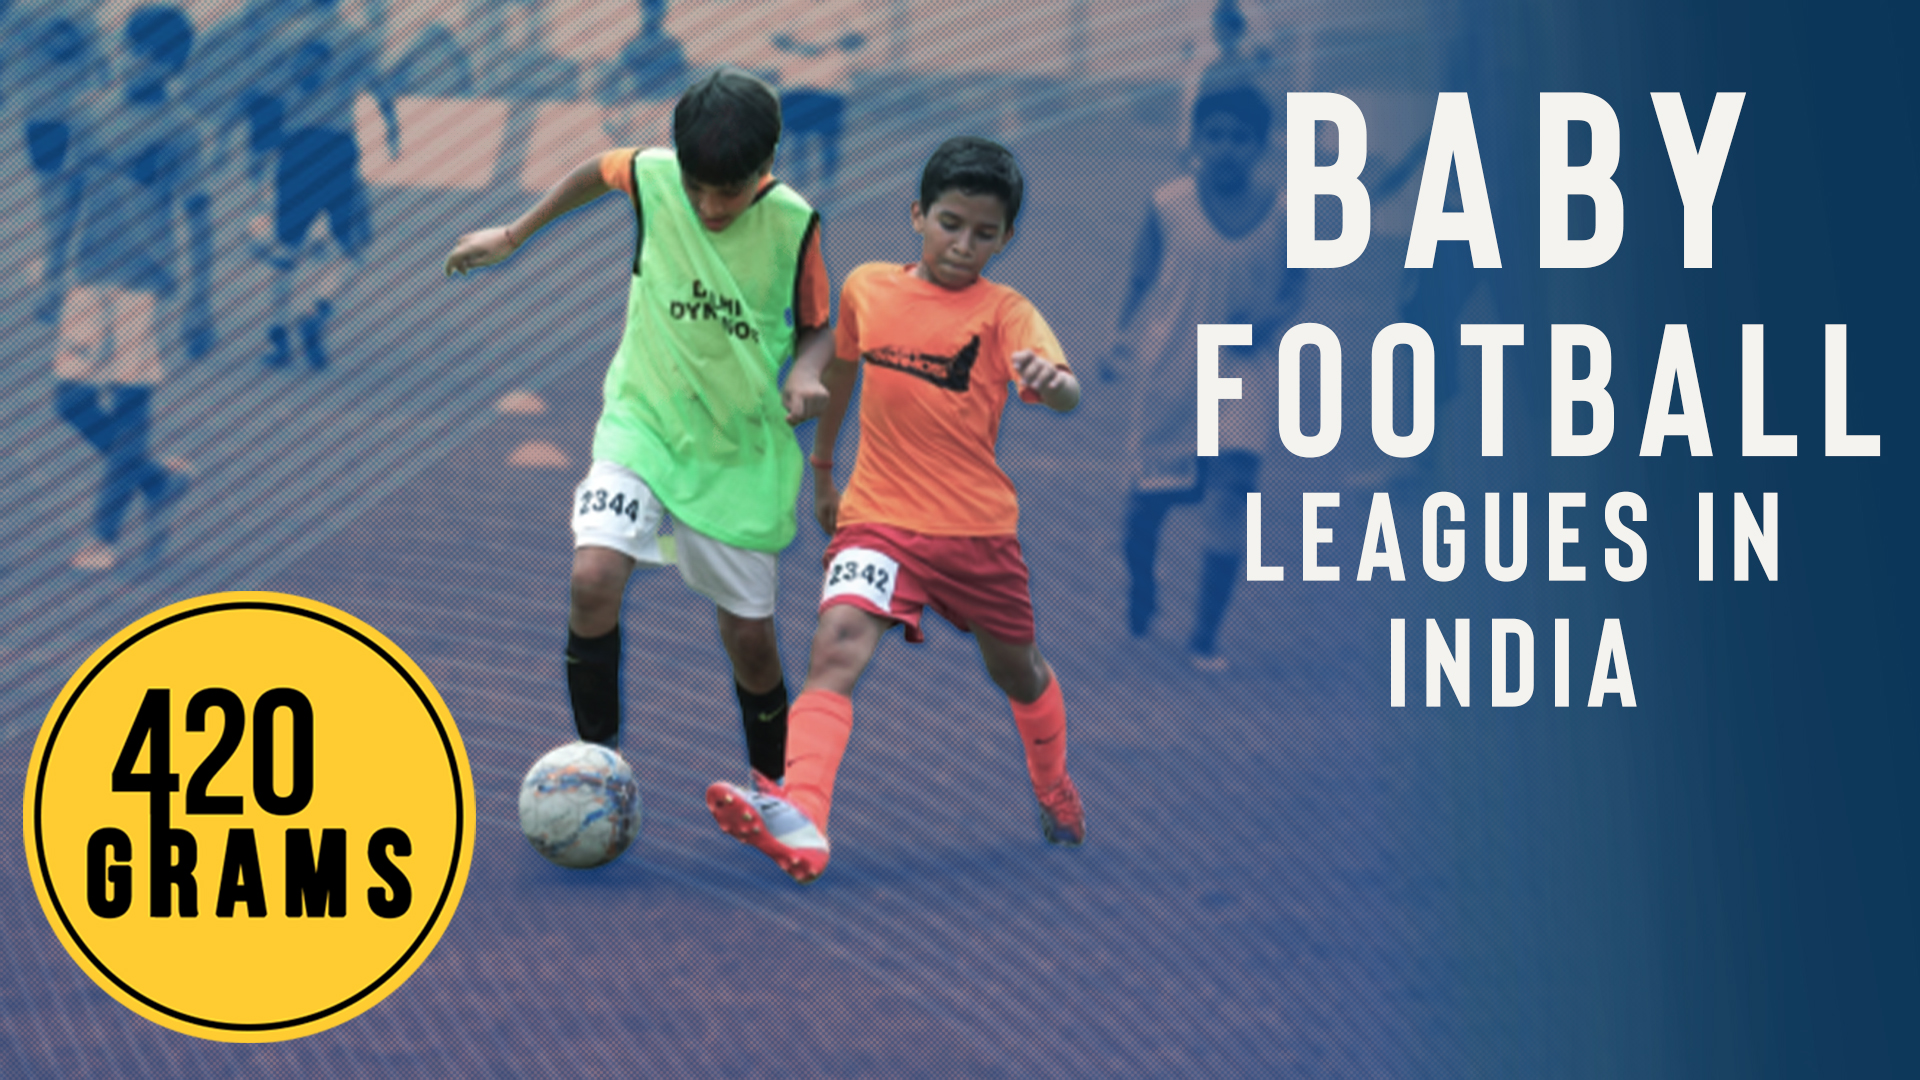 Baby leagues in Indian football